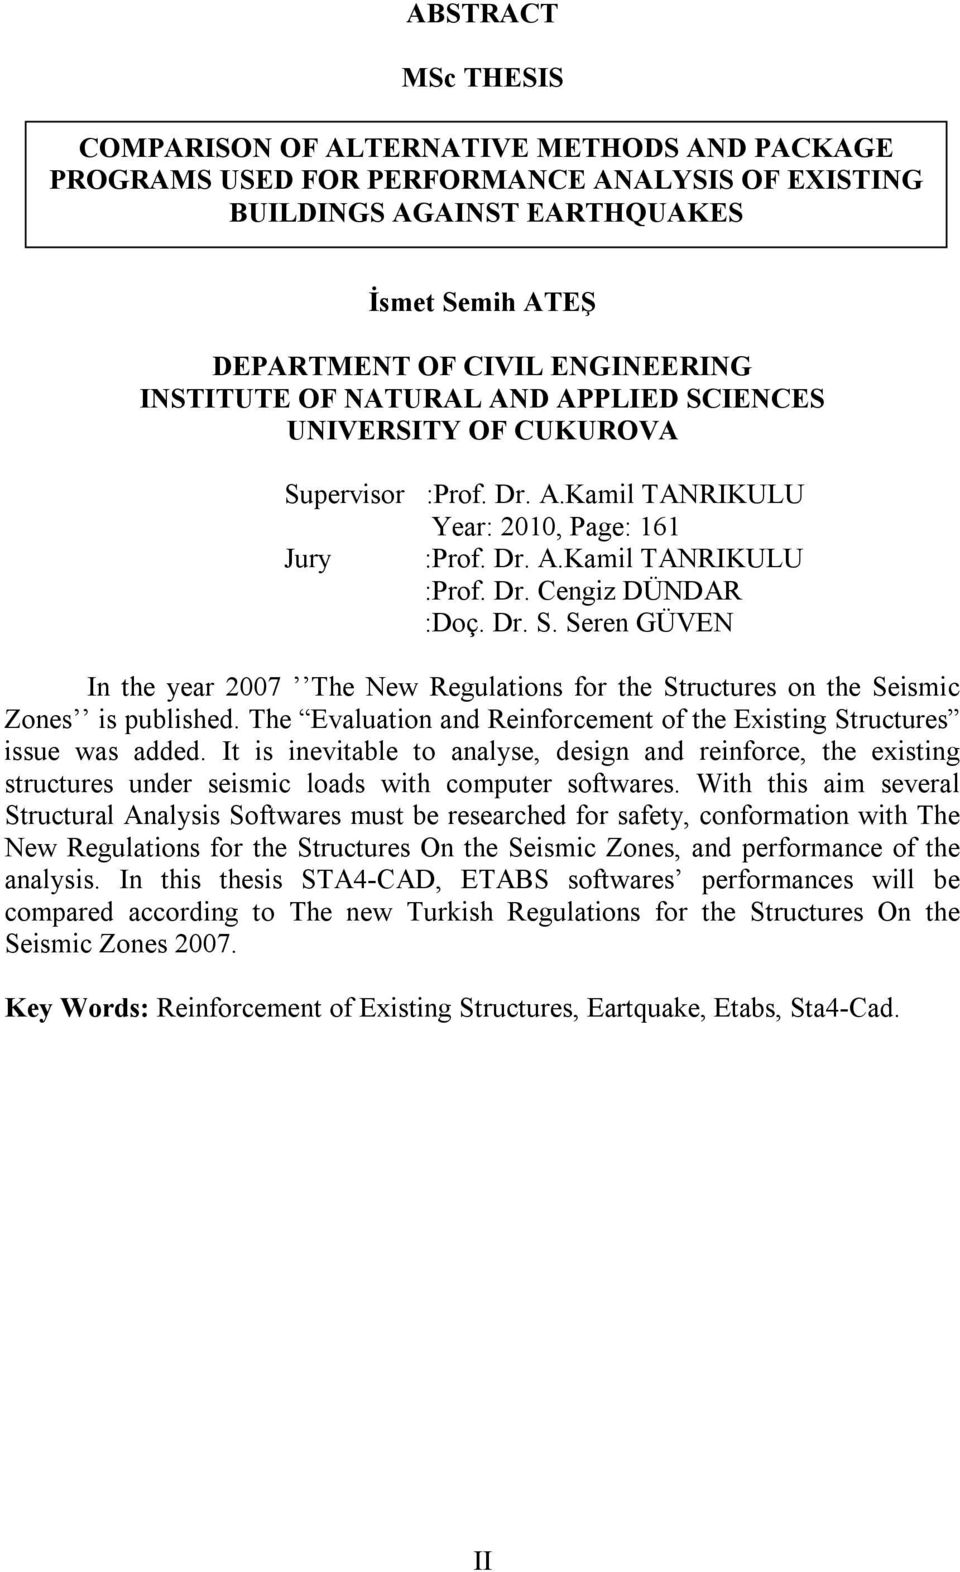 The Evaluation and Reinforcement of the Existing Structures issue was added. It is inevitable to analyse, design and reinforce, the existing structures under seismic loads with computer softwares.